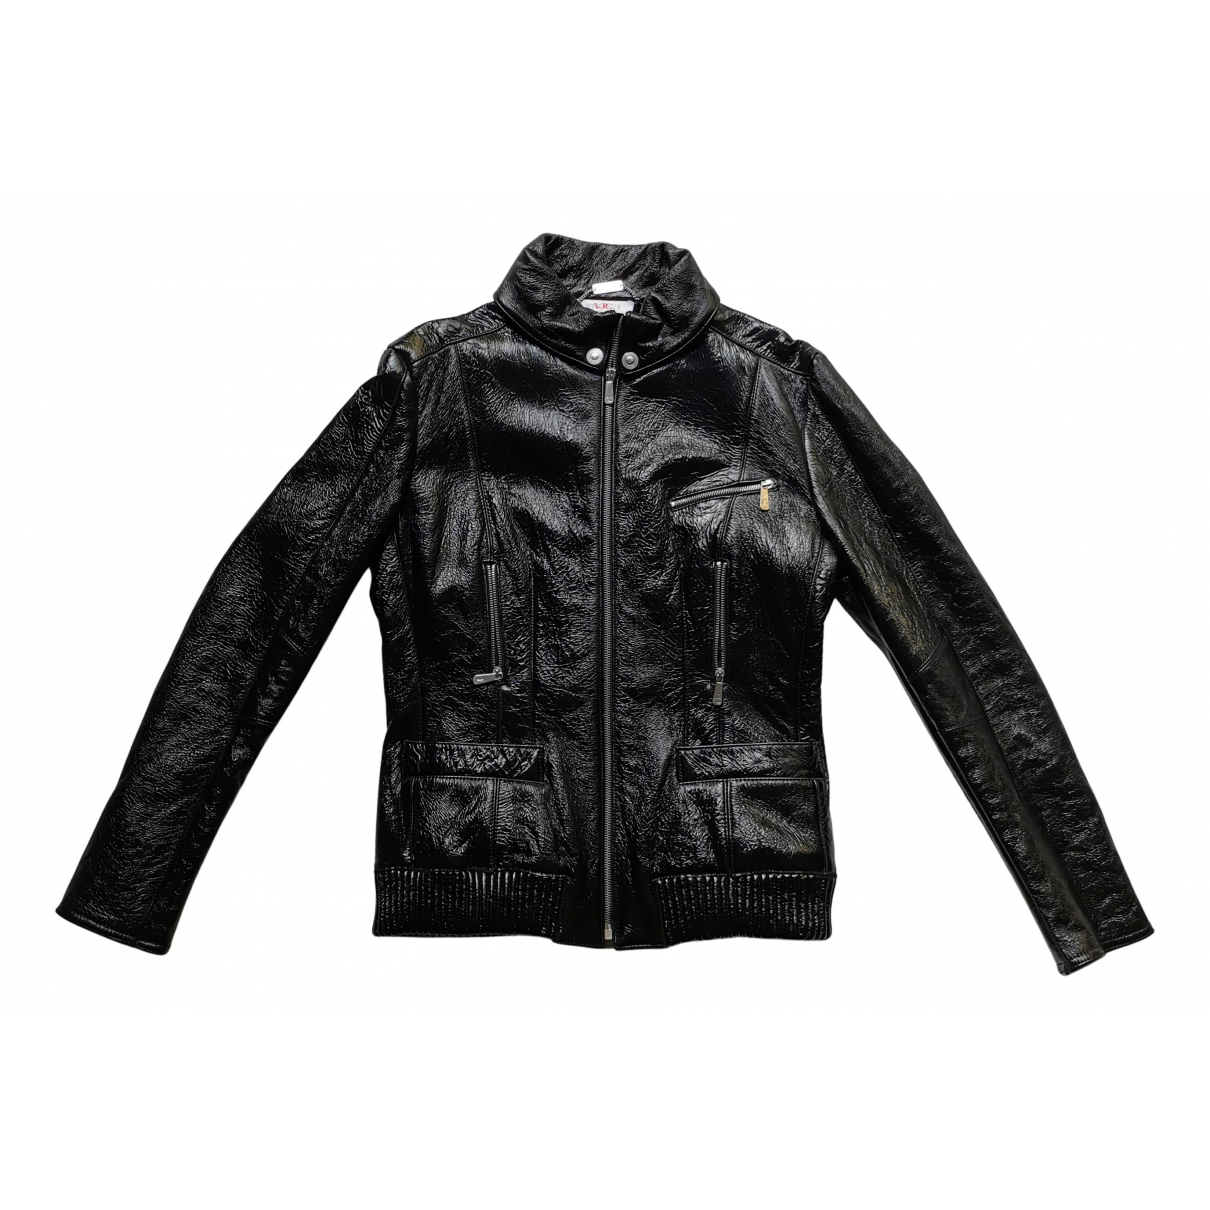 Versace Jeans N Black Leather coat for Women L International